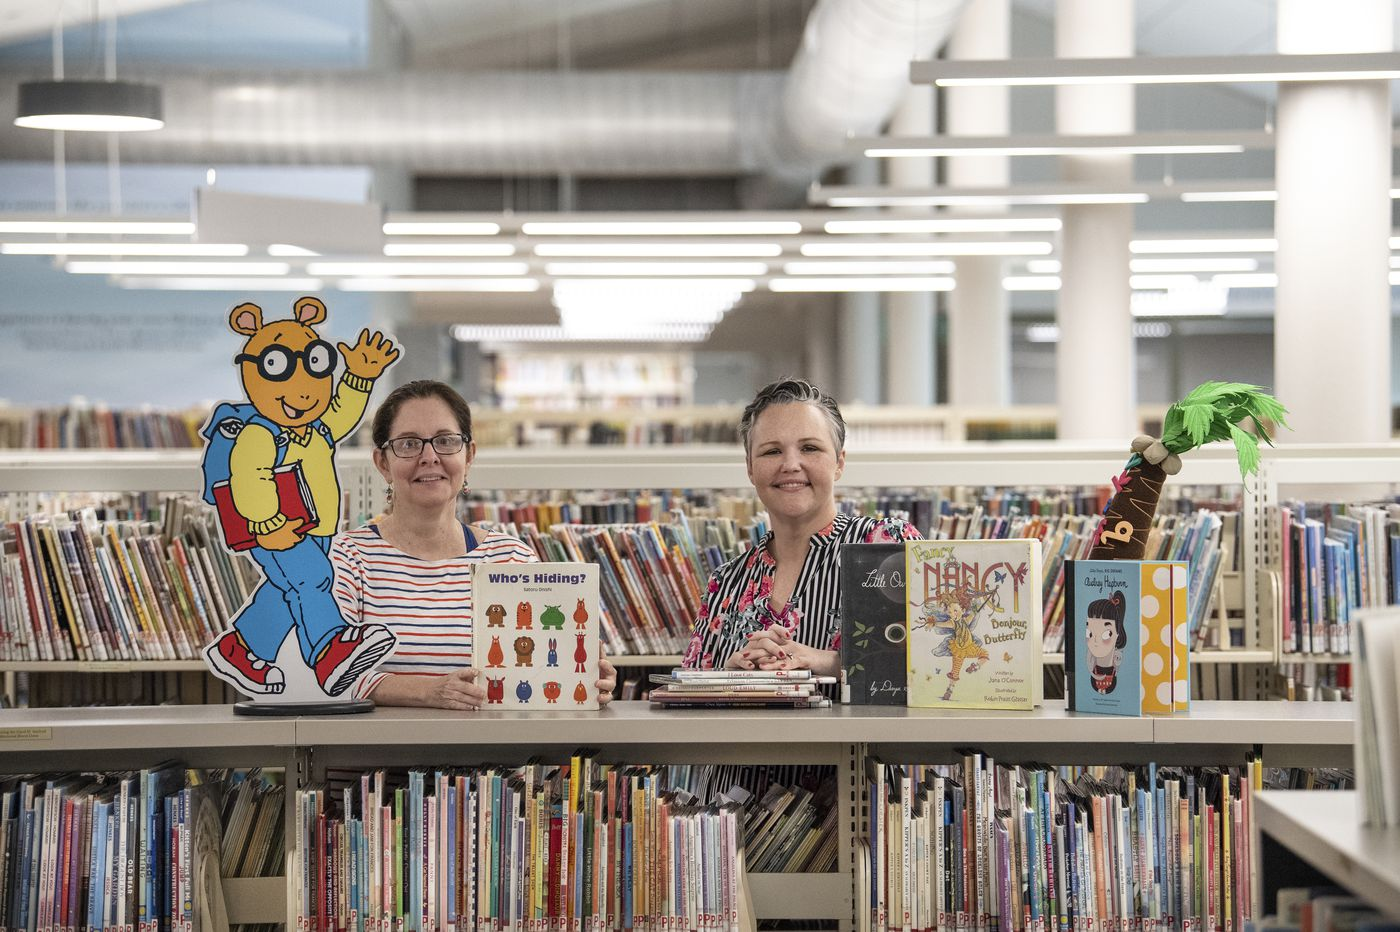 With $7.1 million investment, Radnor shows suburban libraries are still vital